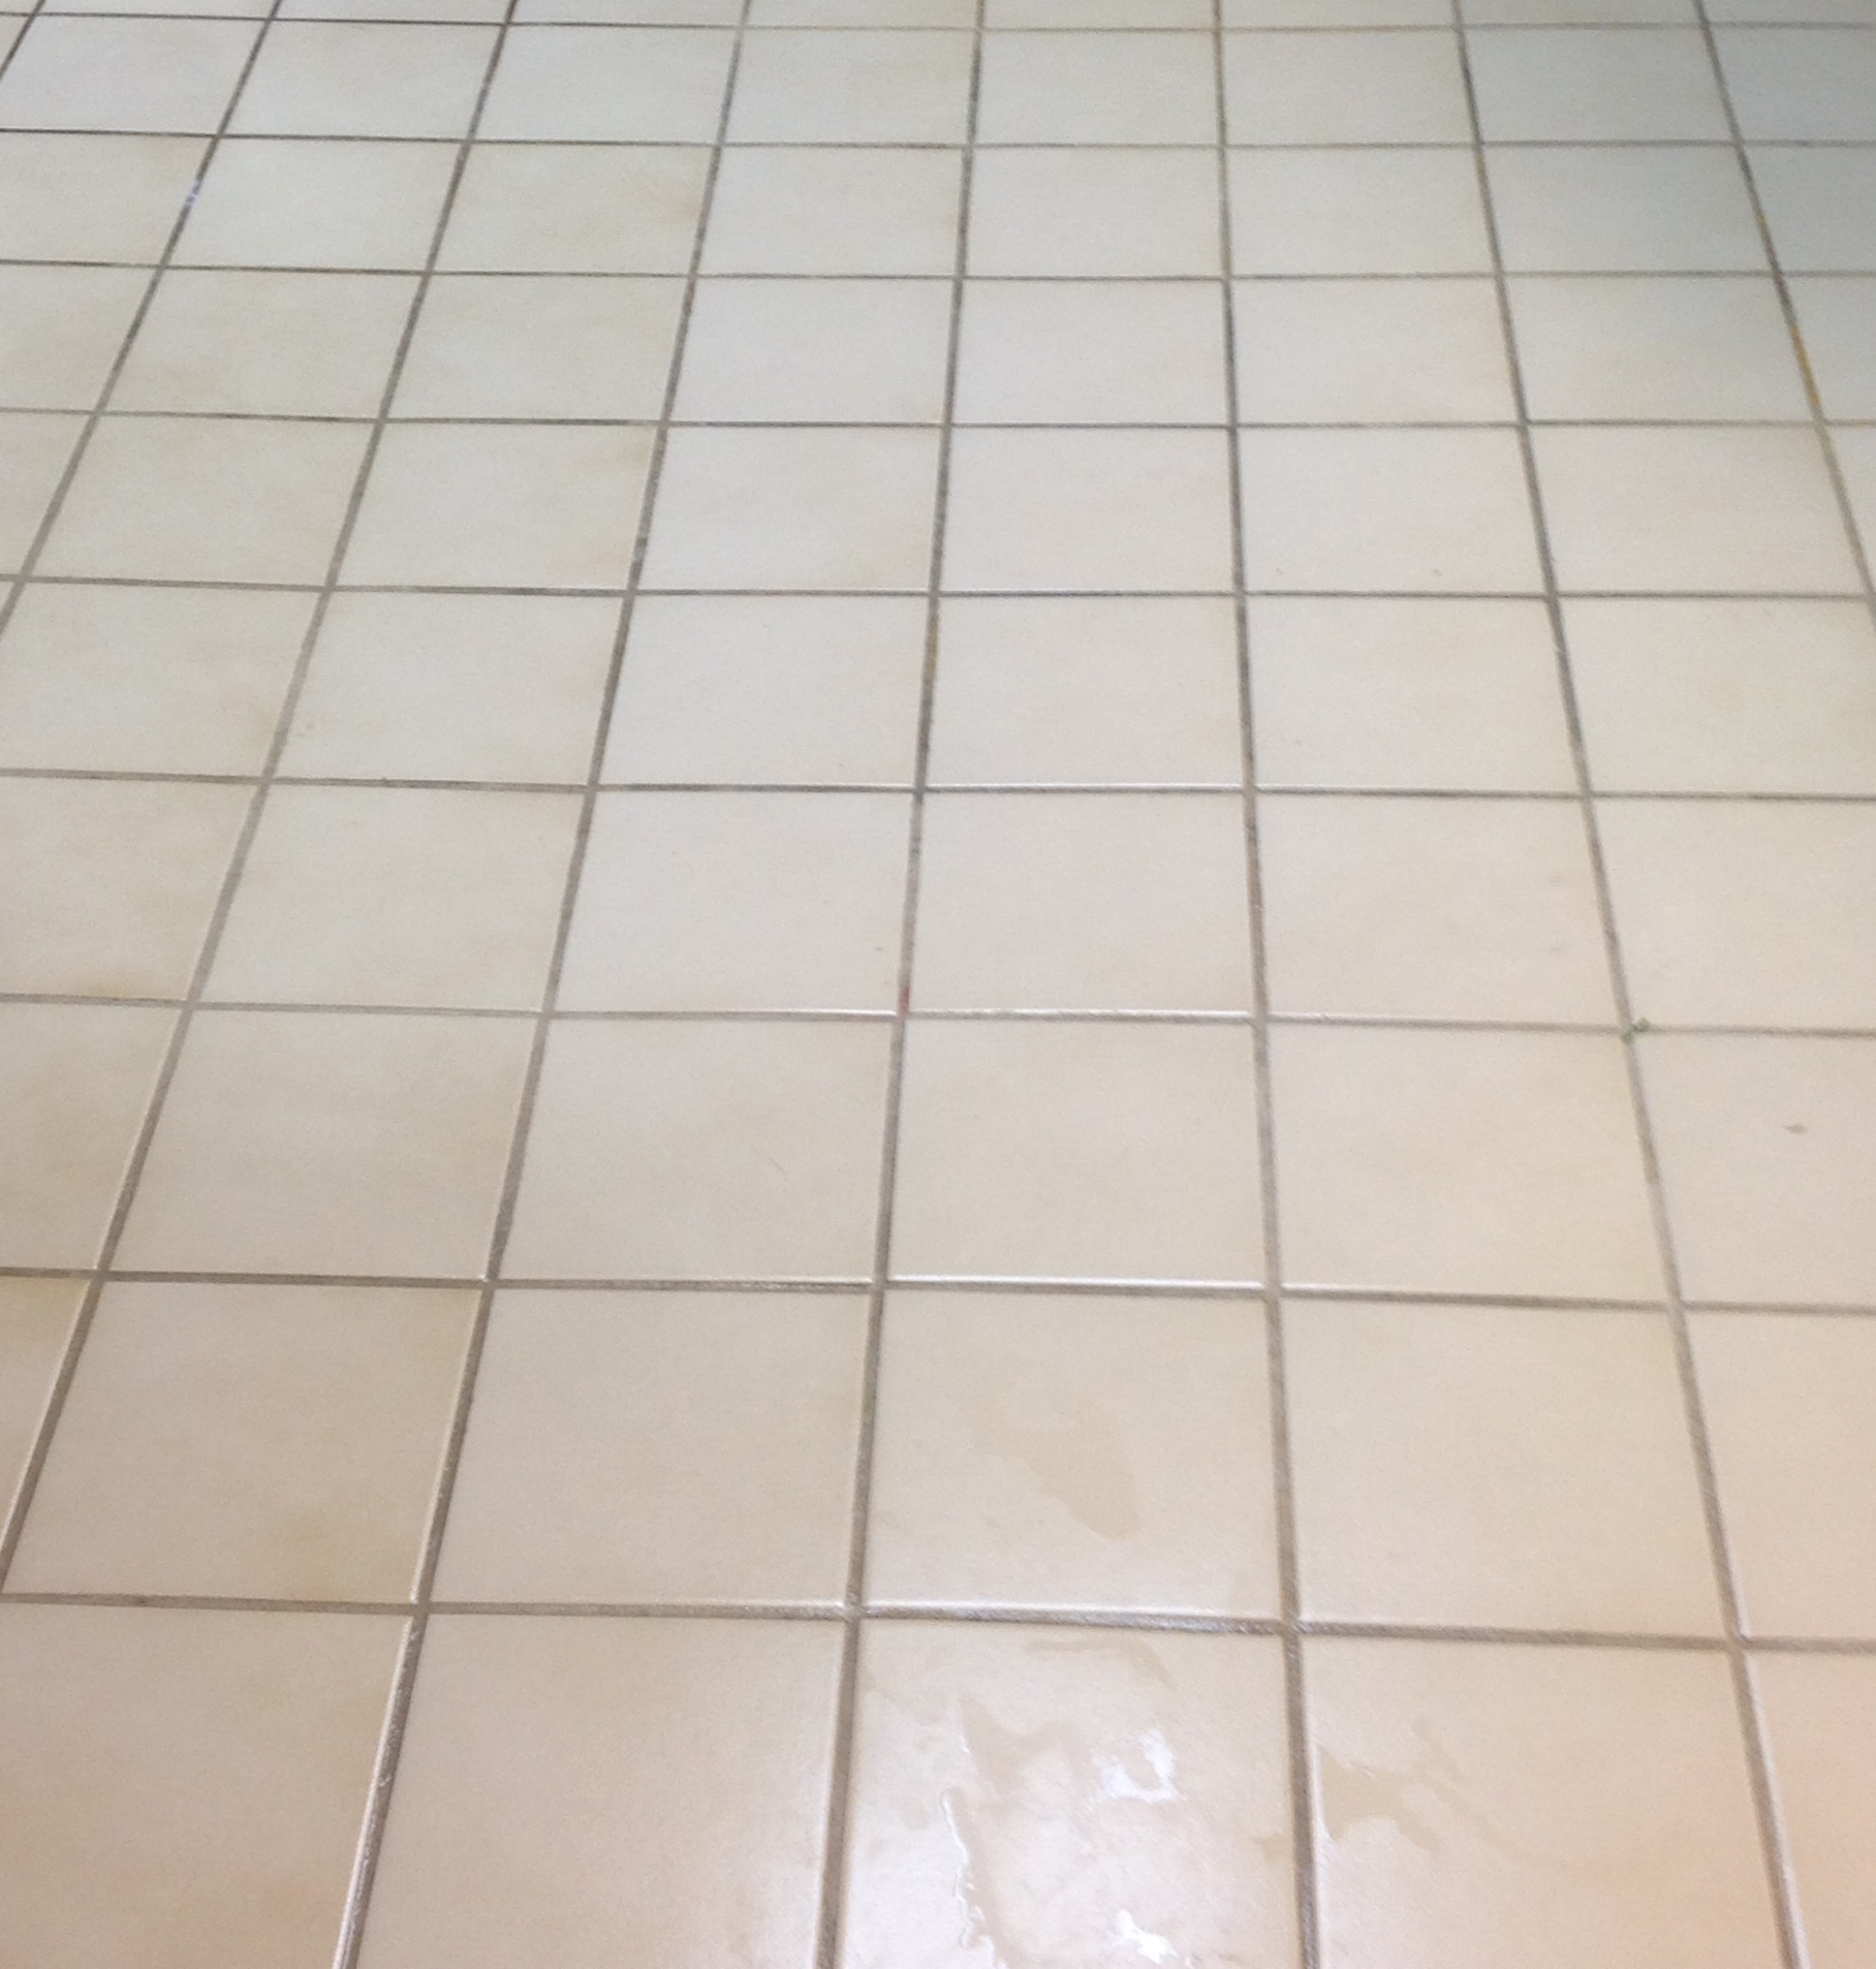 Ceramic Tile And Grout Cleaning Martins Floor Coverings Inc